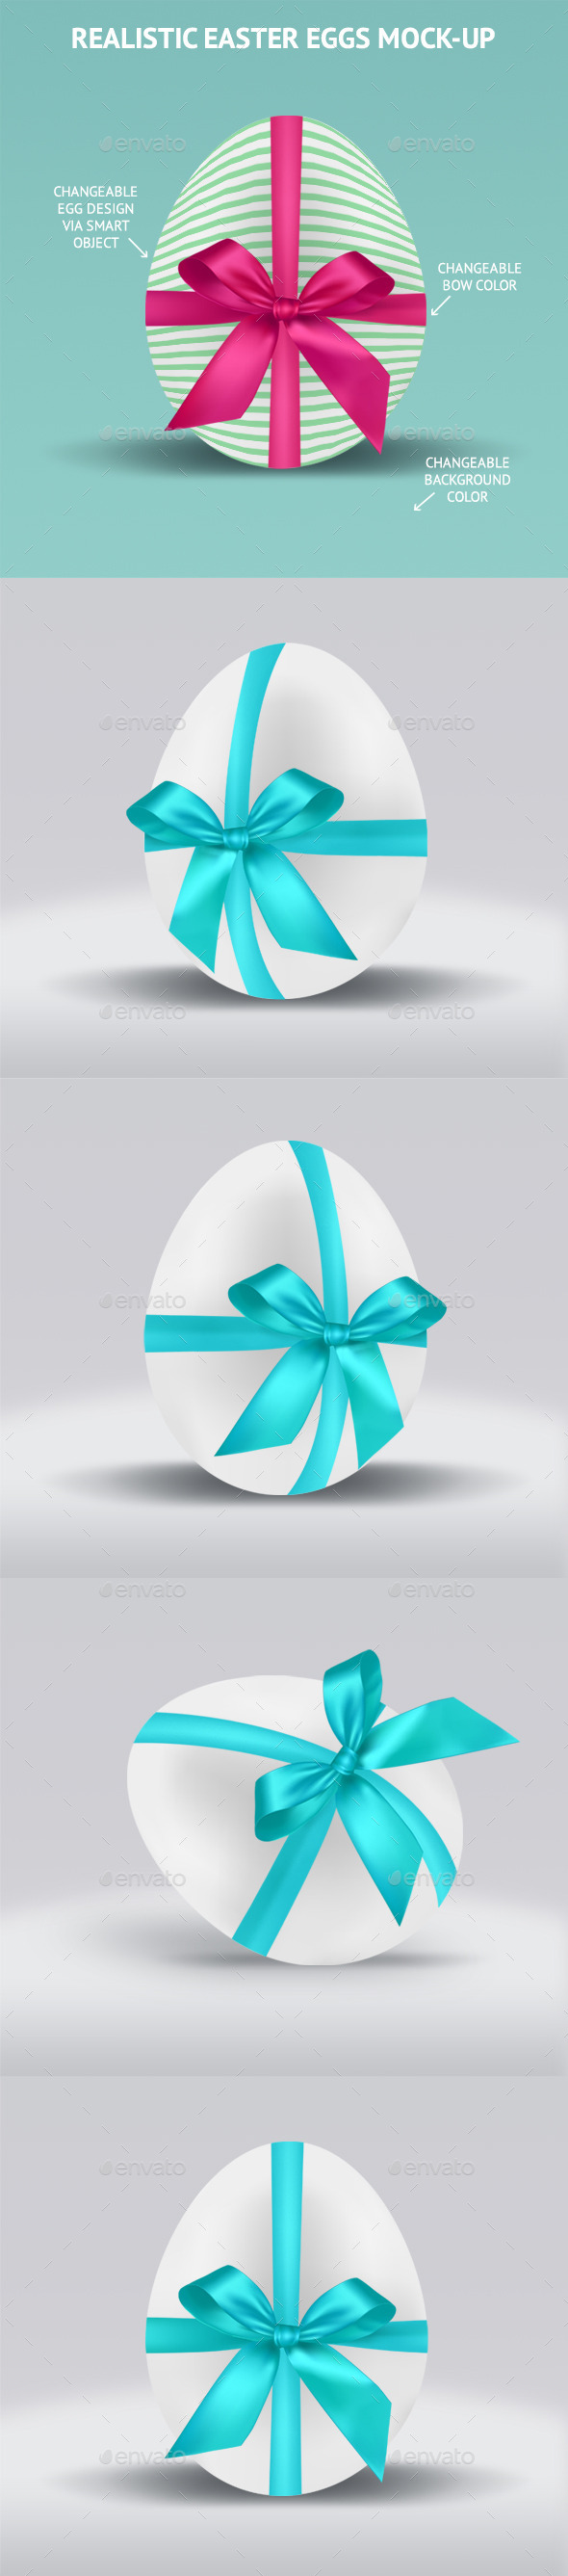 Realistic Easter Eggs Mock-up  - Miscellaneous Backgrounds